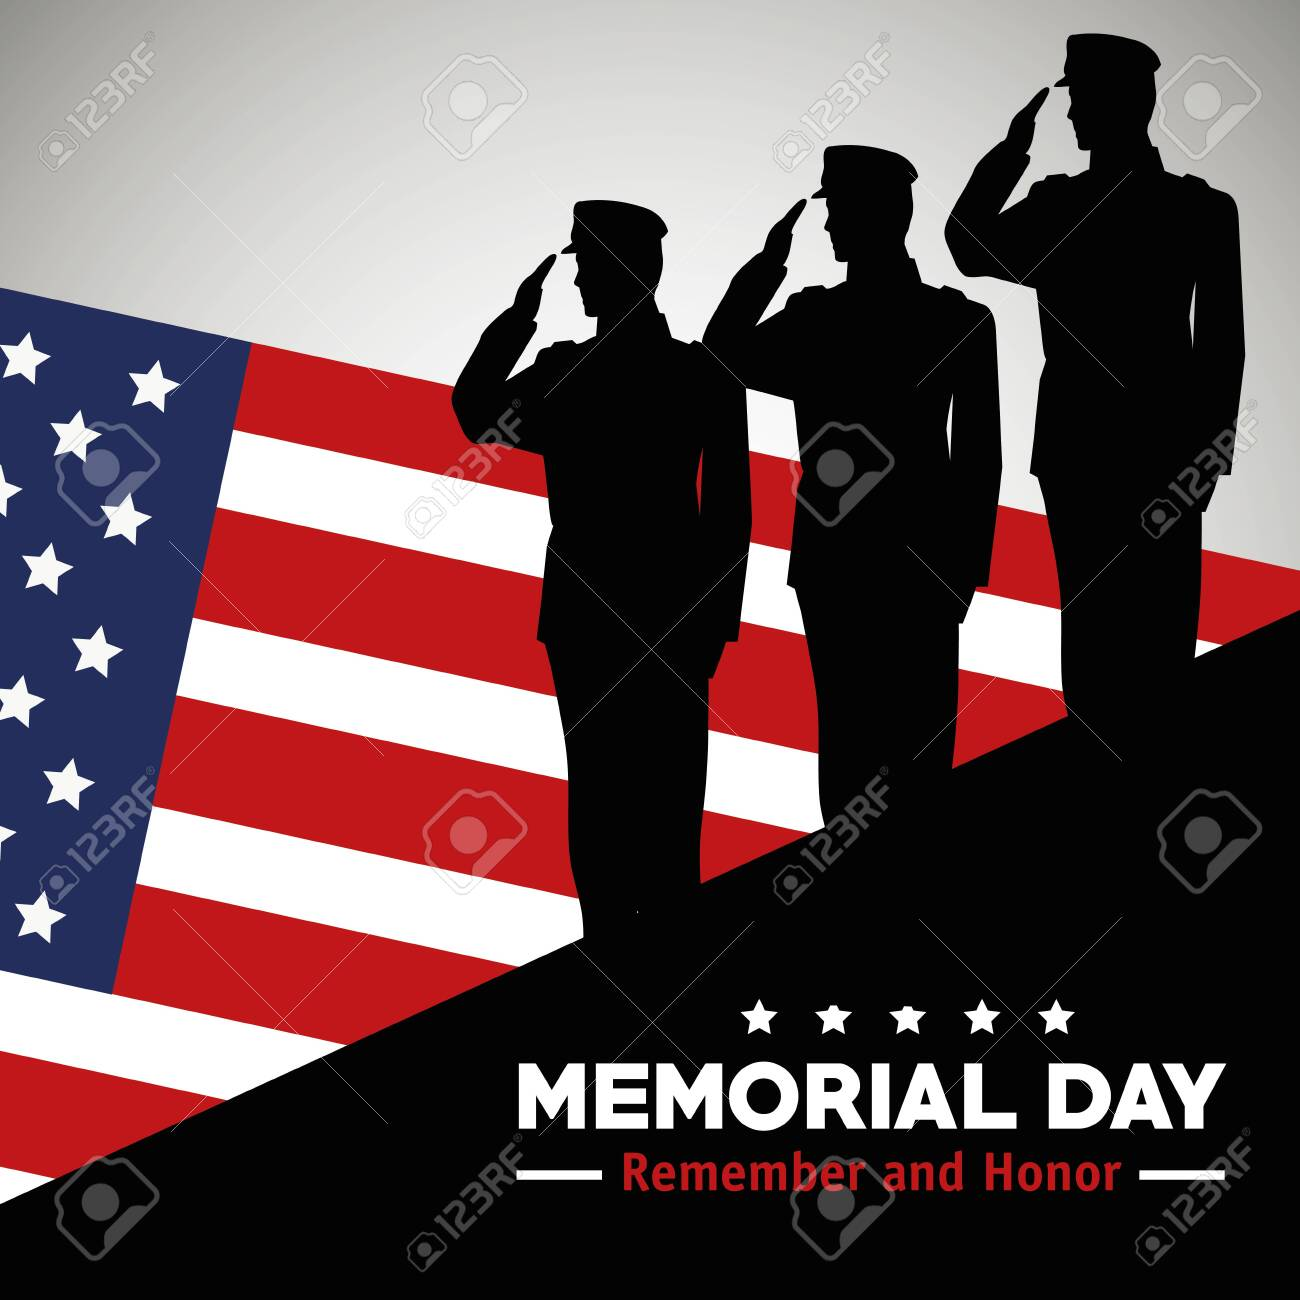 soldiers with usa flag to celebrate memorial day vector illustration - 133838372